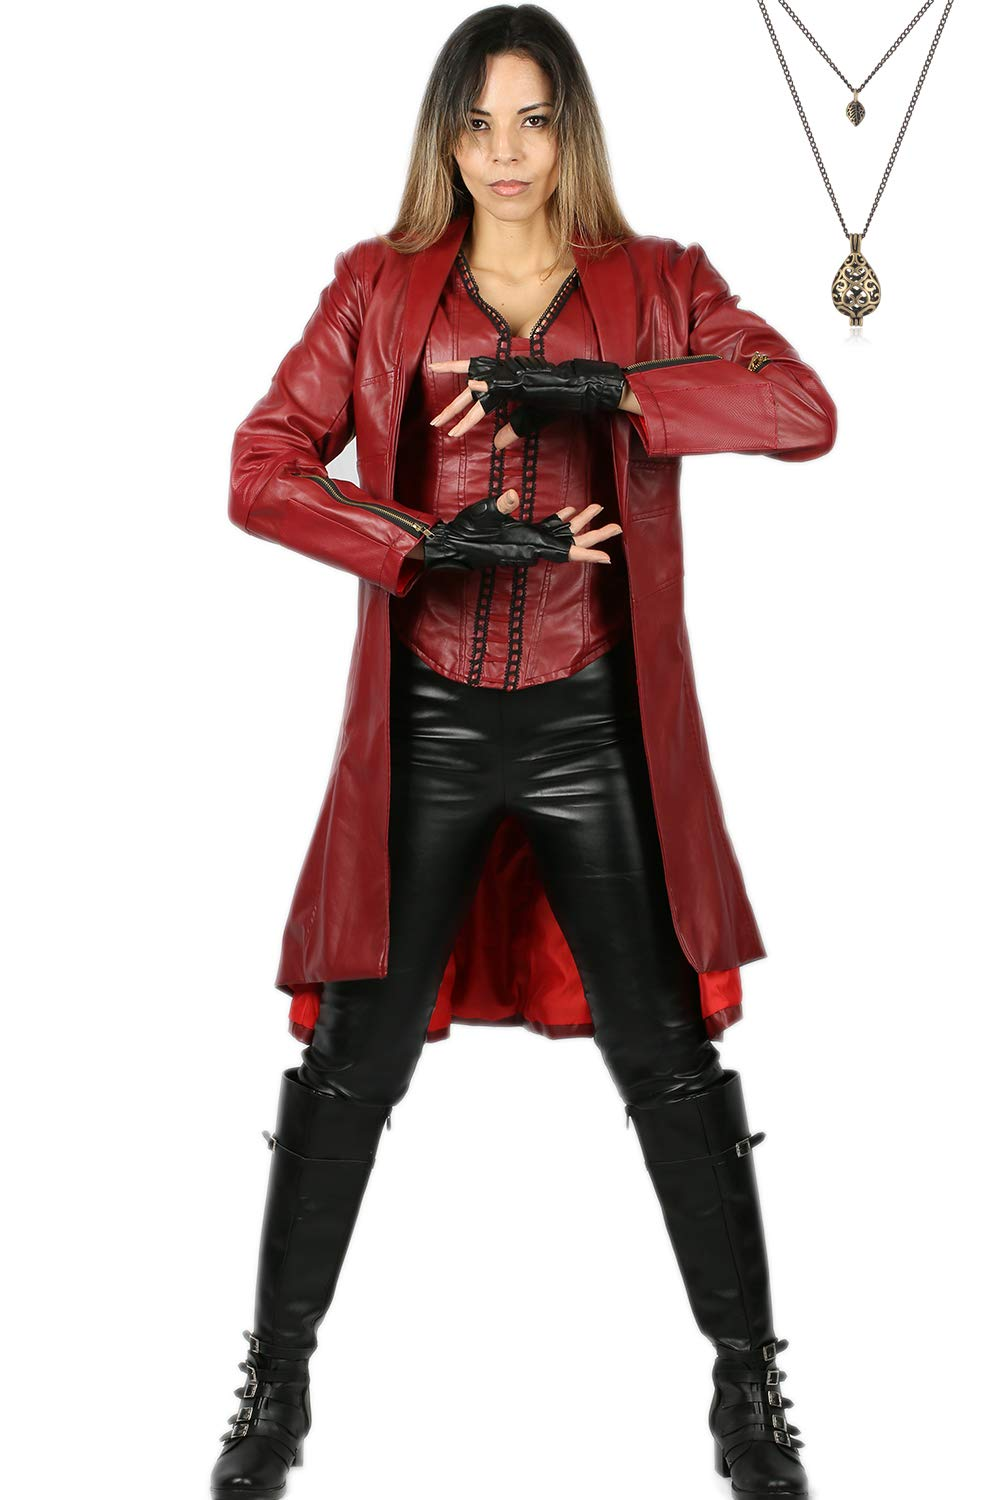 Xcoser Scarlet Witch Costume for Wanda Maximoff Hallloween Cosplay L